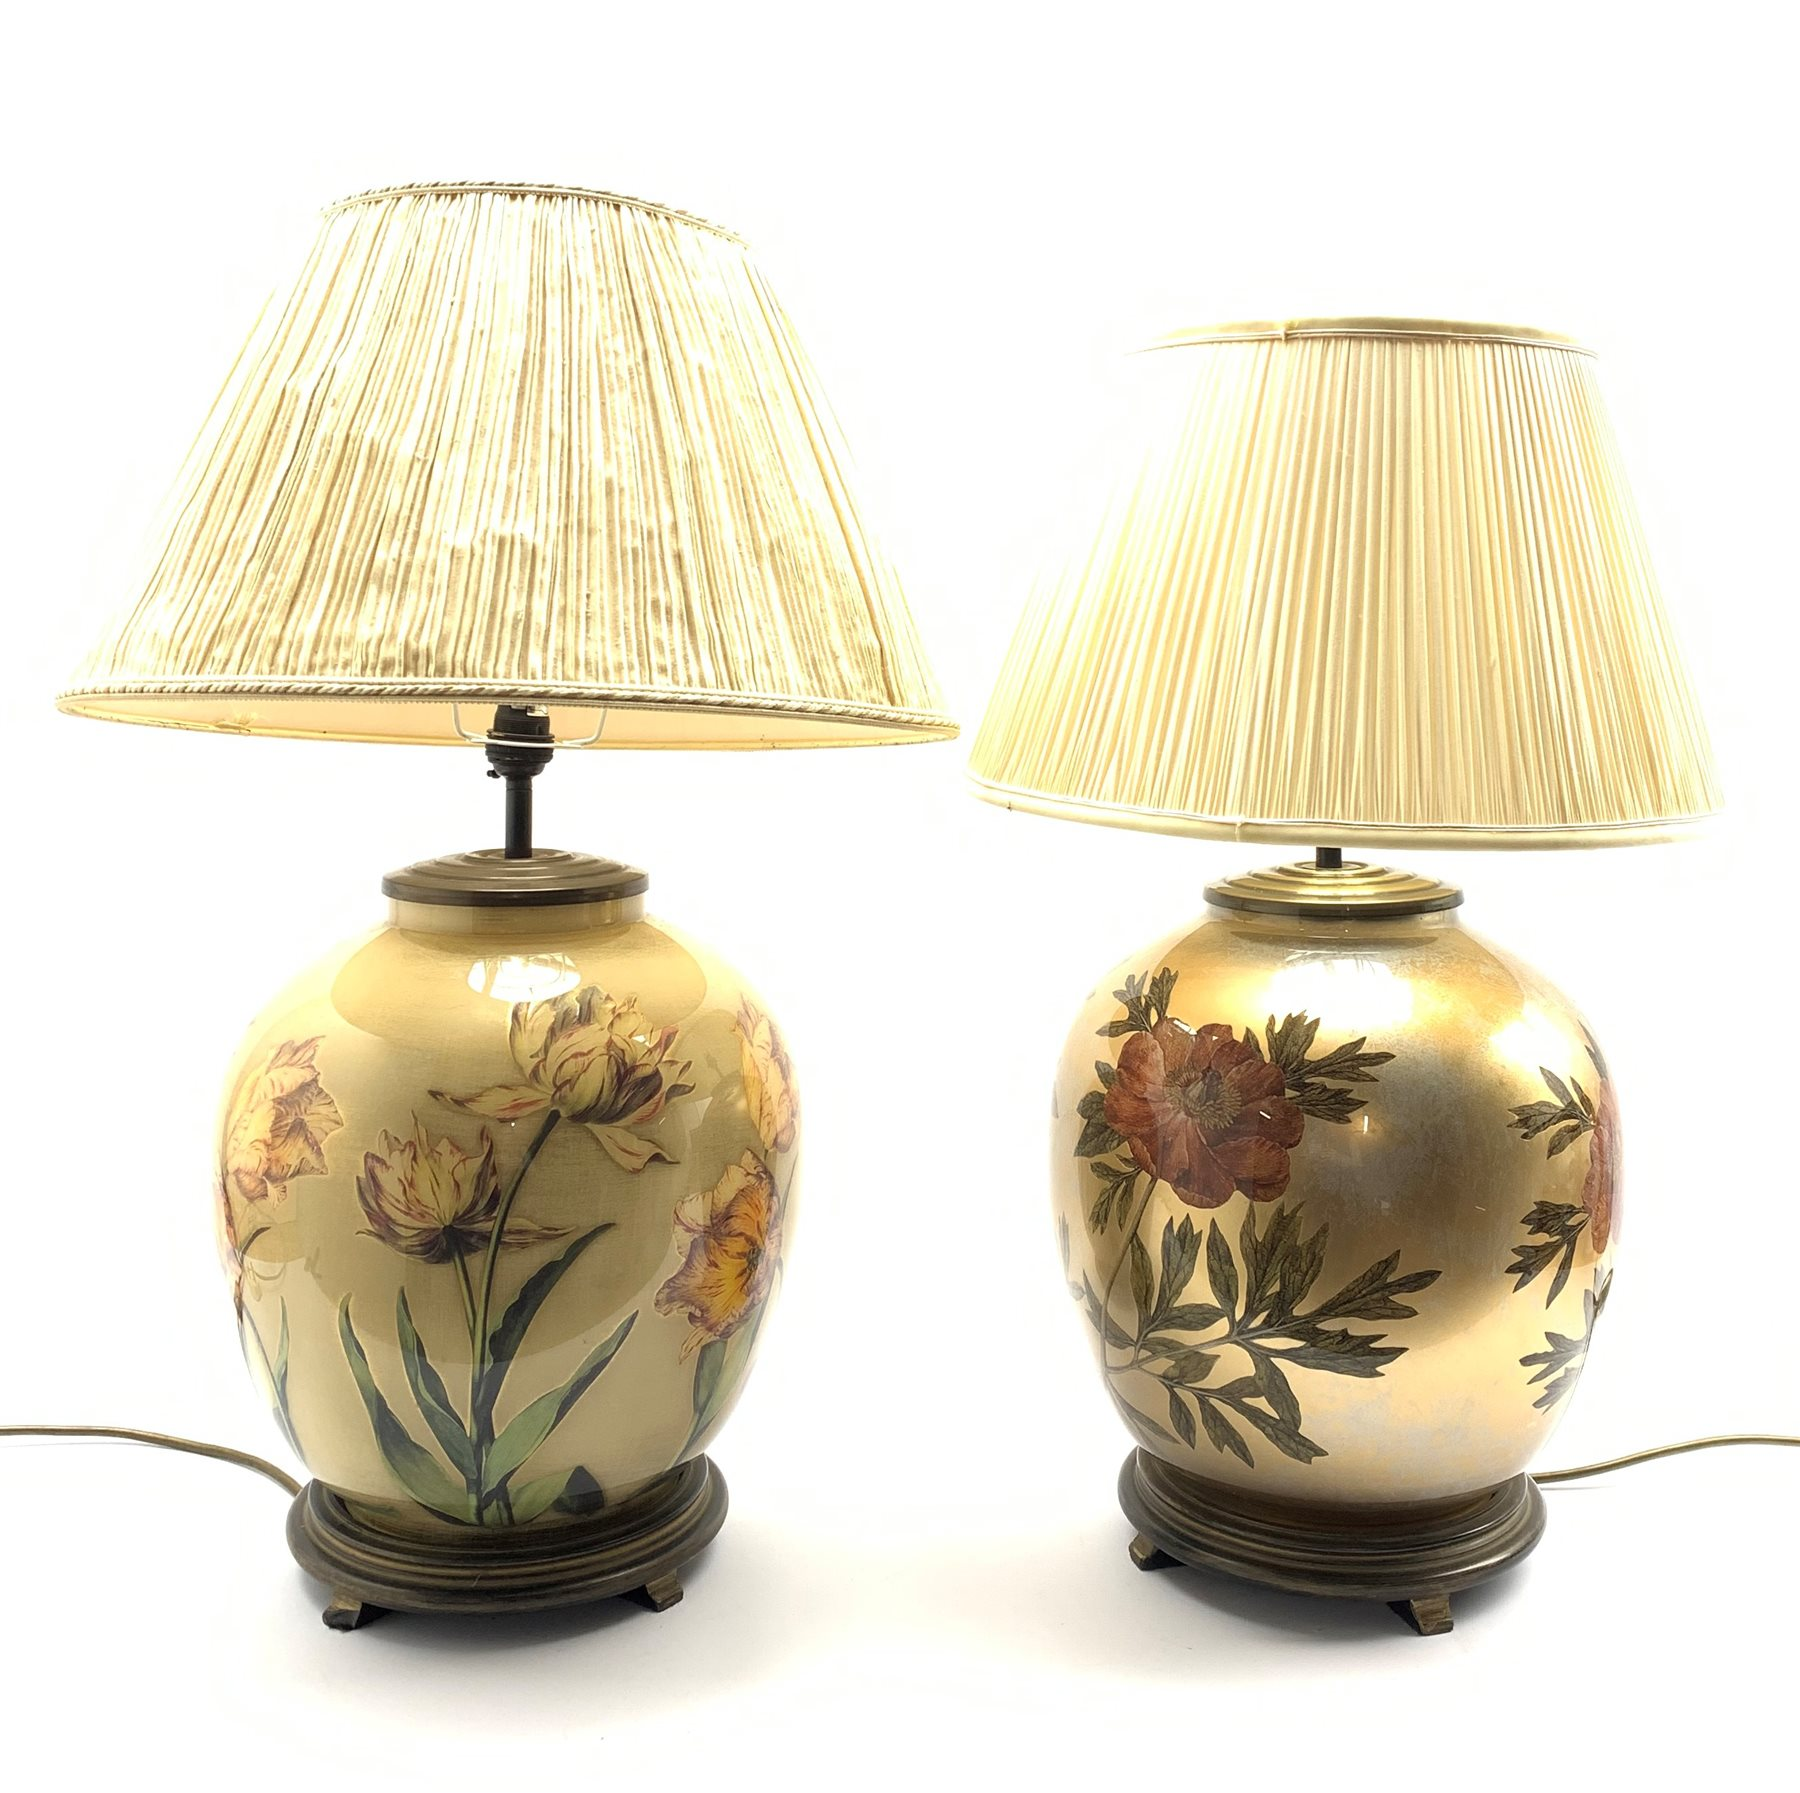 A near pair of glass table lamps having floral decoration on lustre ground, with pleated shades, H66